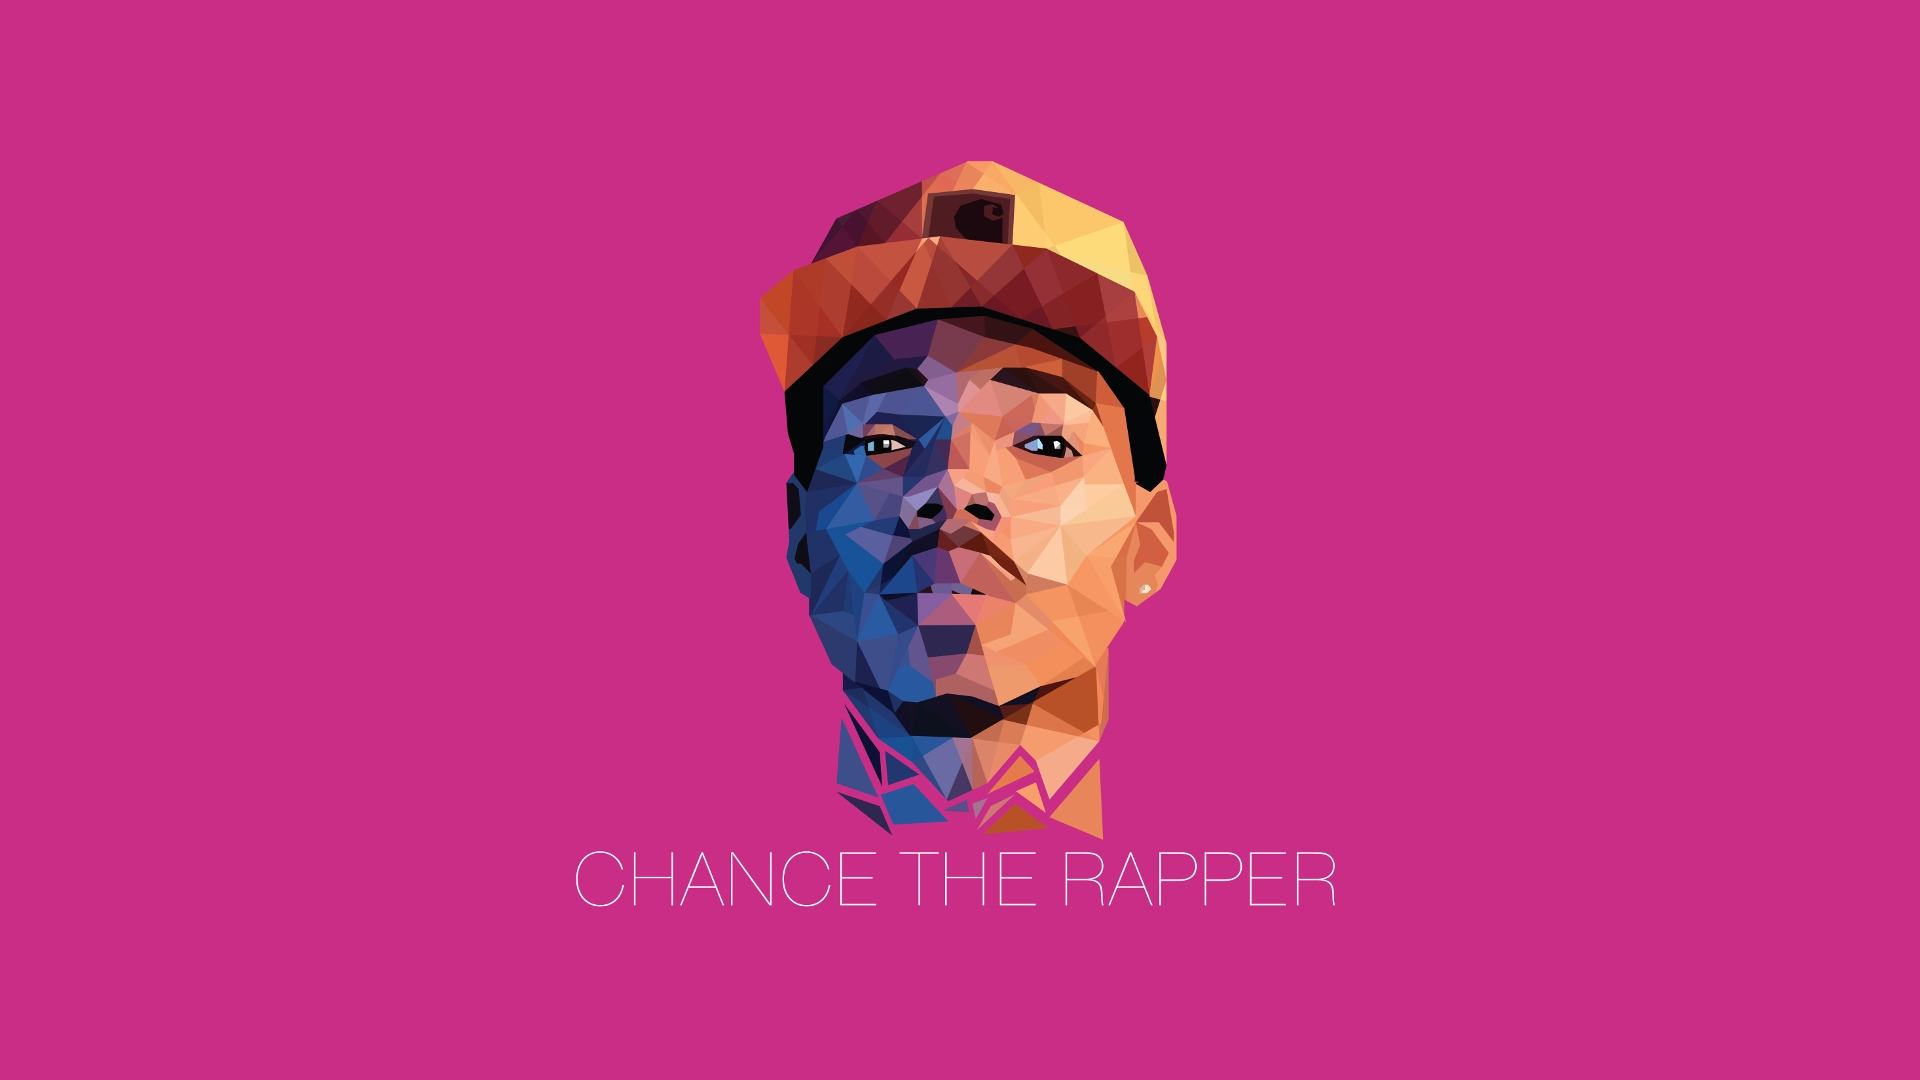 15 chance the rapper hd wallpapers | background images - wallpaper abyss